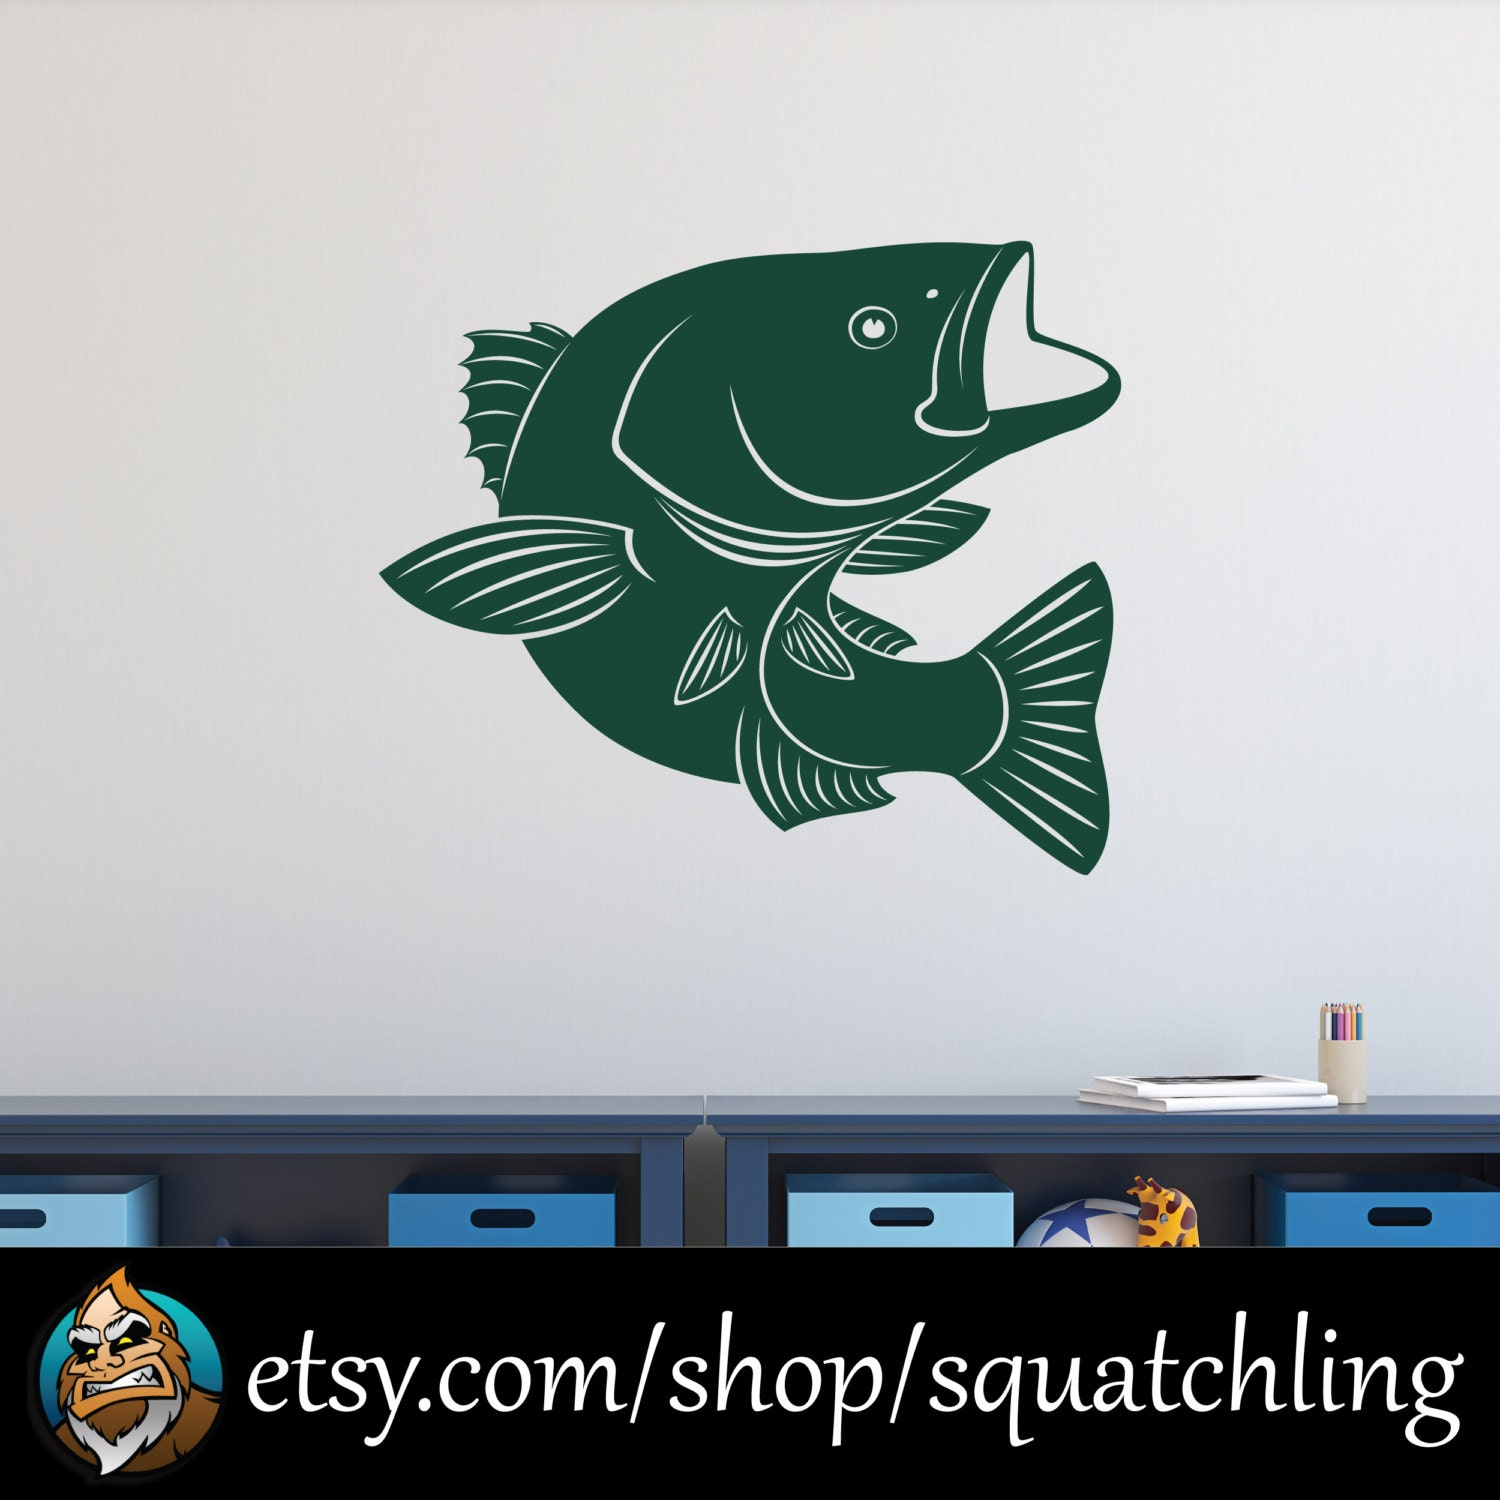 Bass fish wall decal fishing decal hunting decal for Hunting and fishing decals